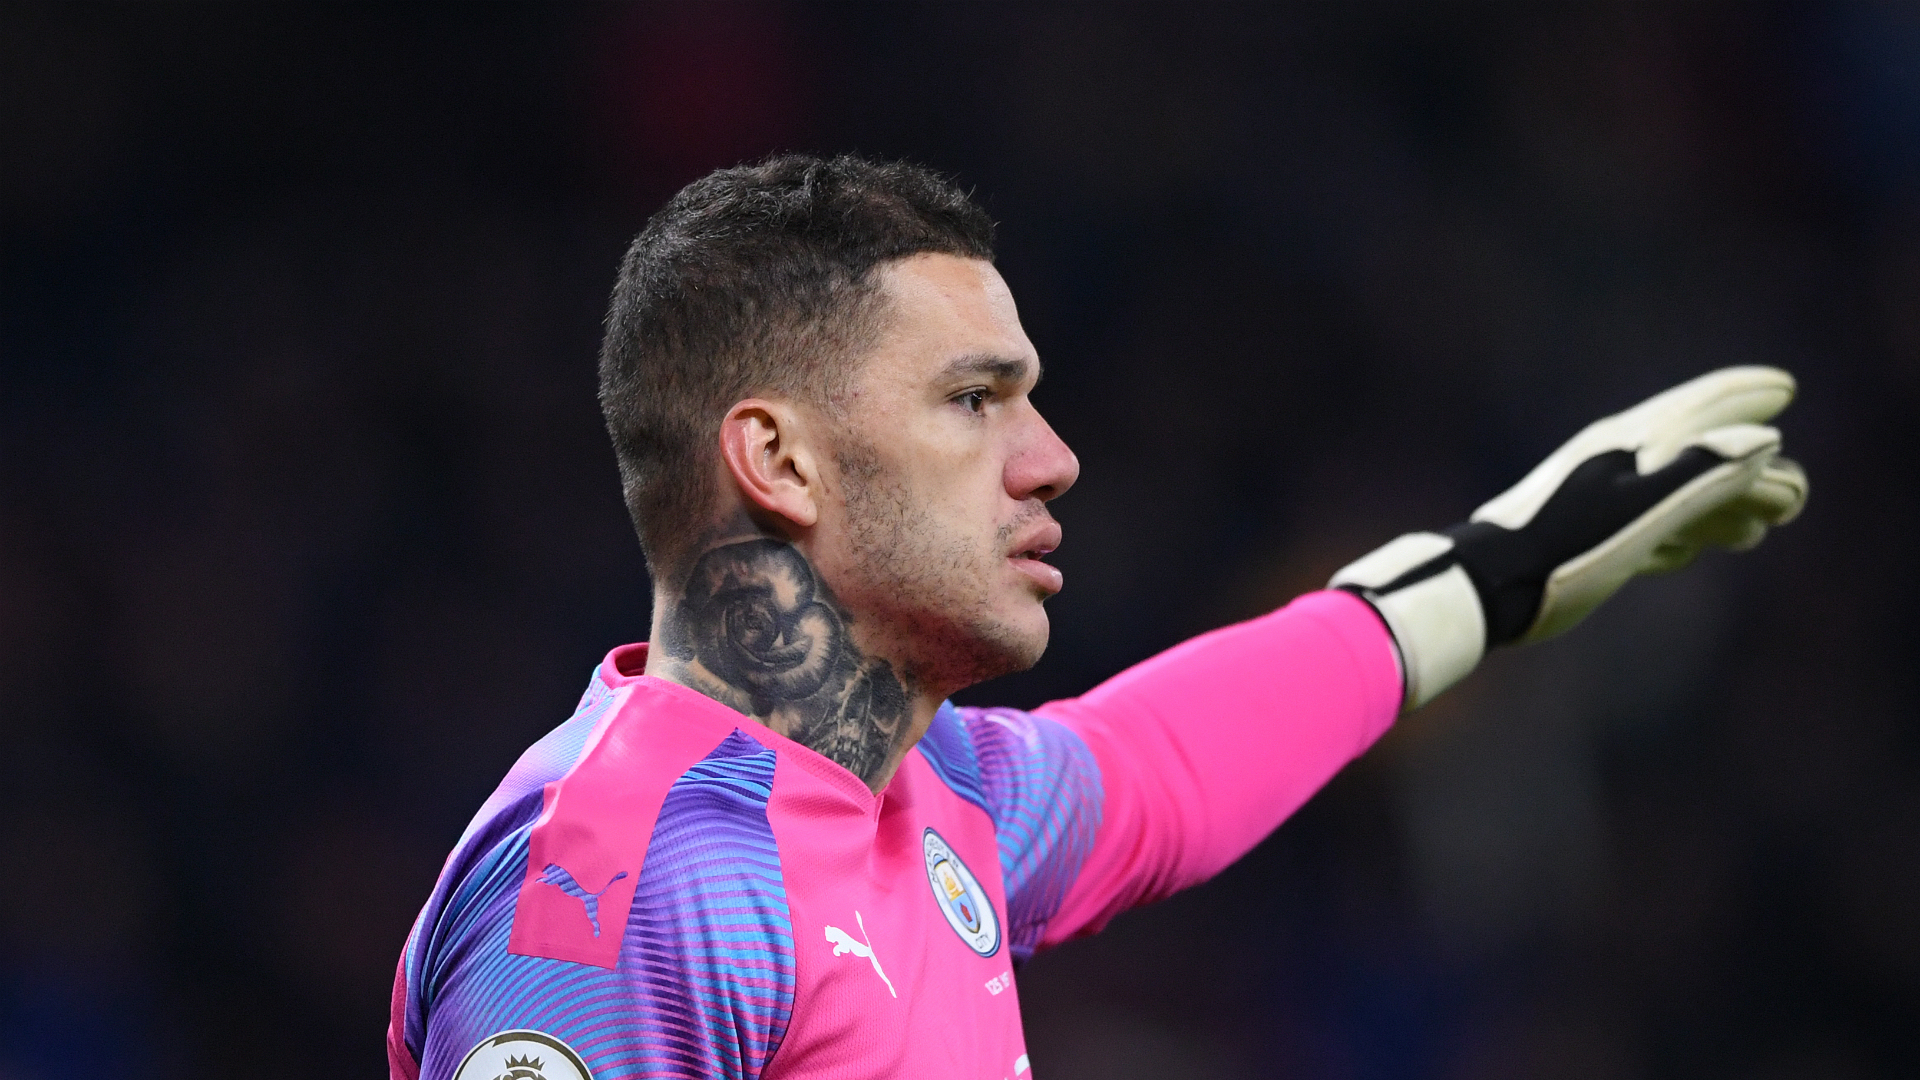 Our rivalry is only on the pitch - Ederson opens up on relationship with Liverpool counterpart Alisson